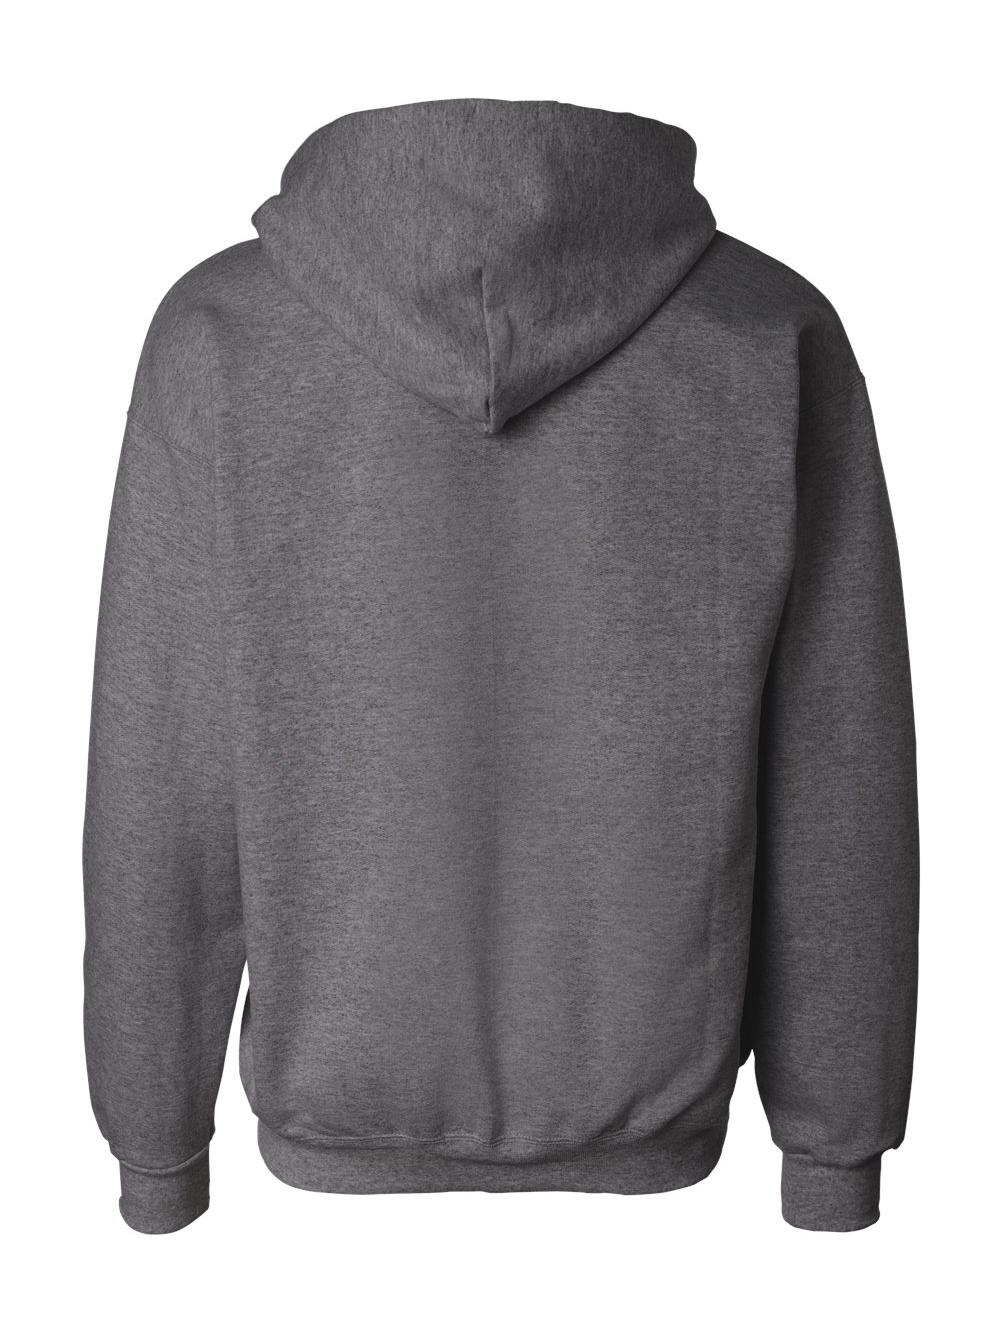 Hanes-Ultimate-Cotton-Full-Zip-Hooded-Sweatshirt-F280 thumbnail 7